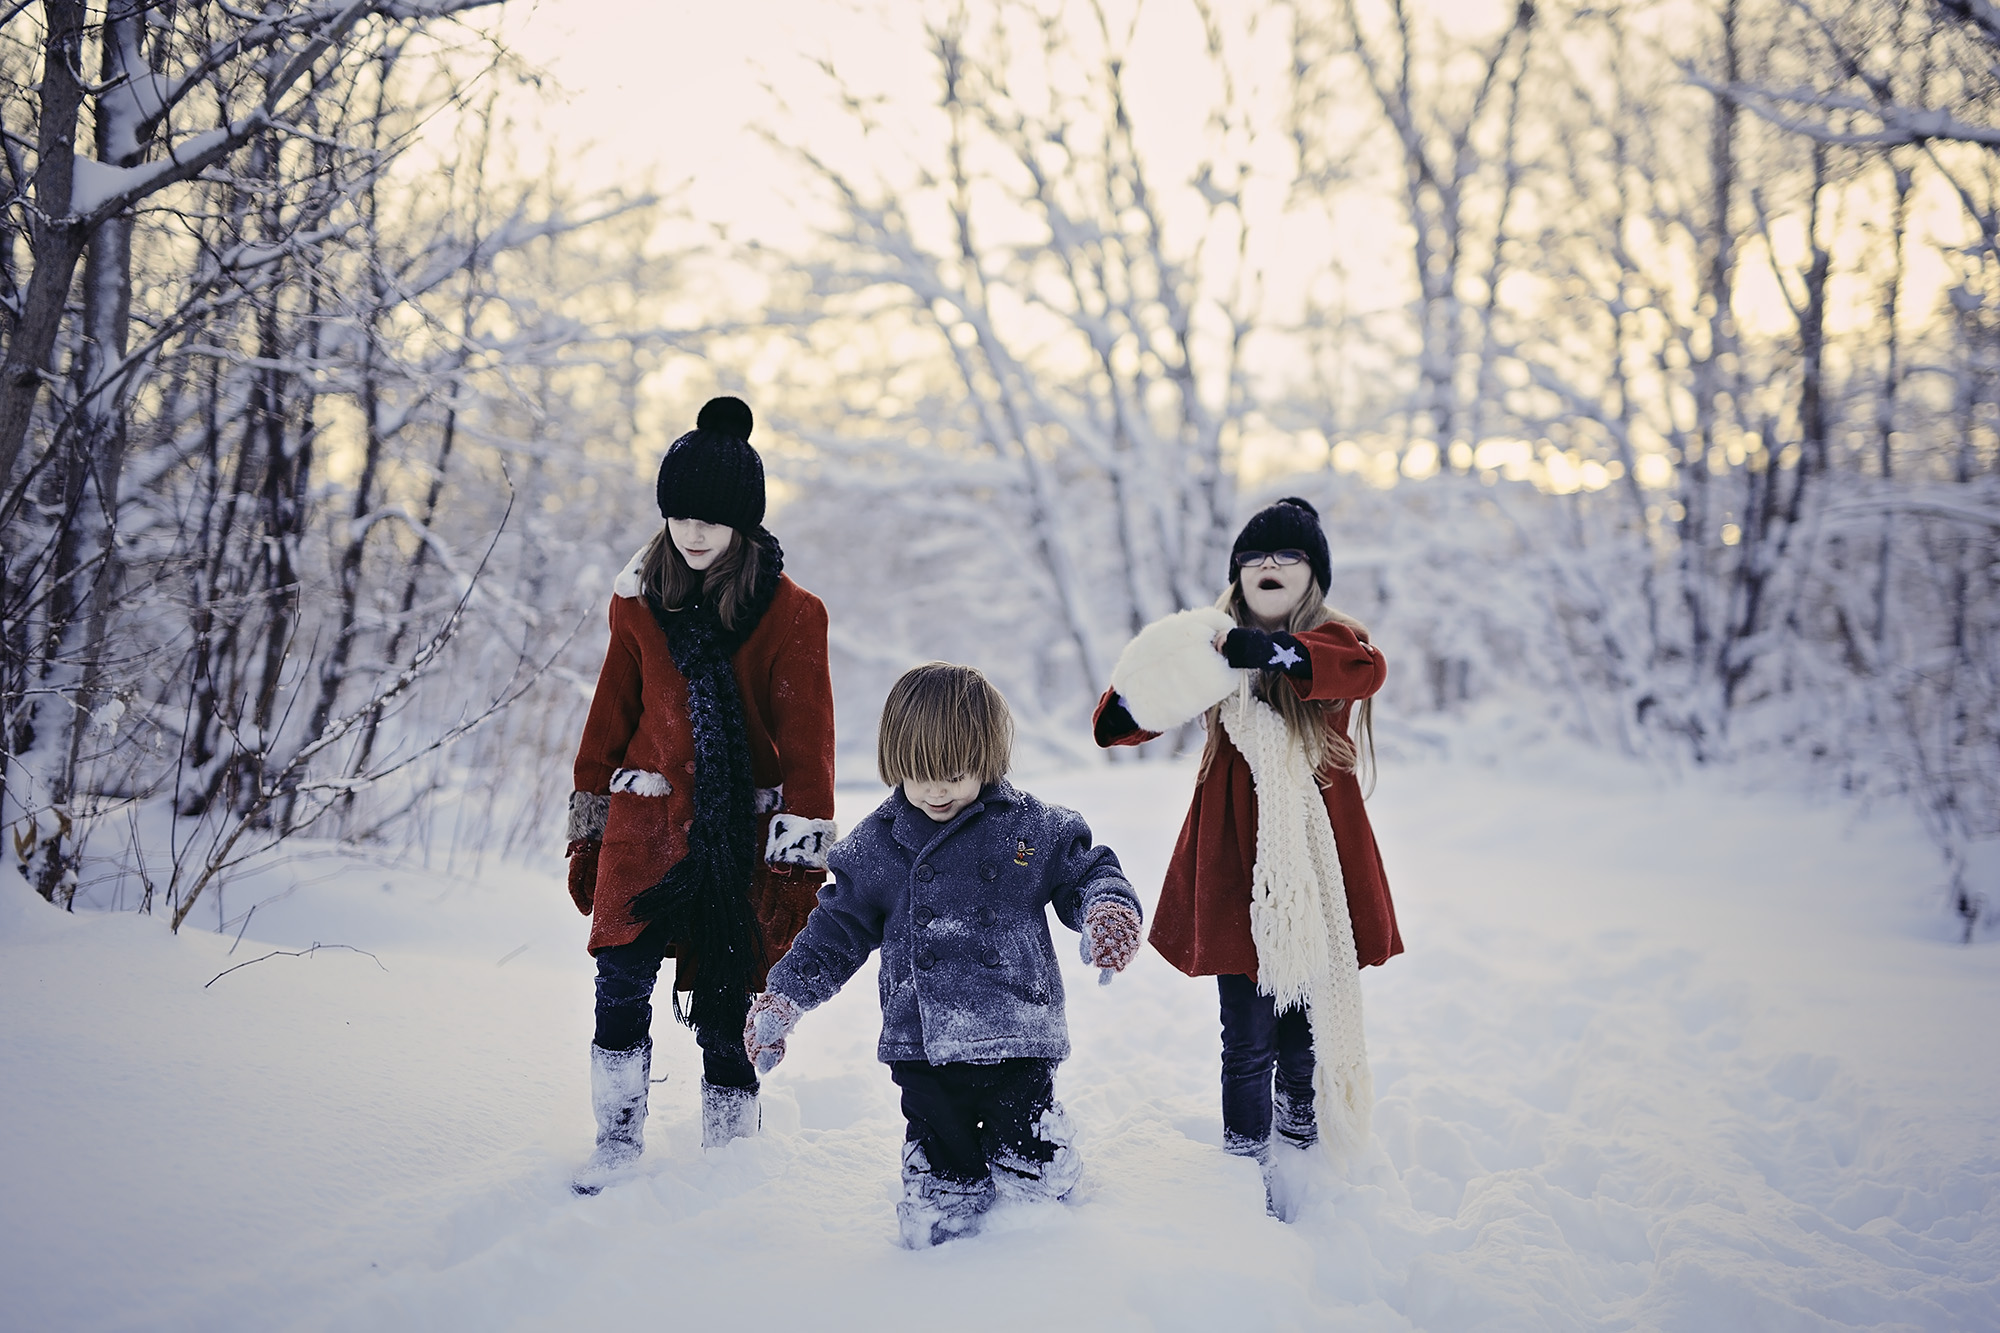 Kids walking in snow